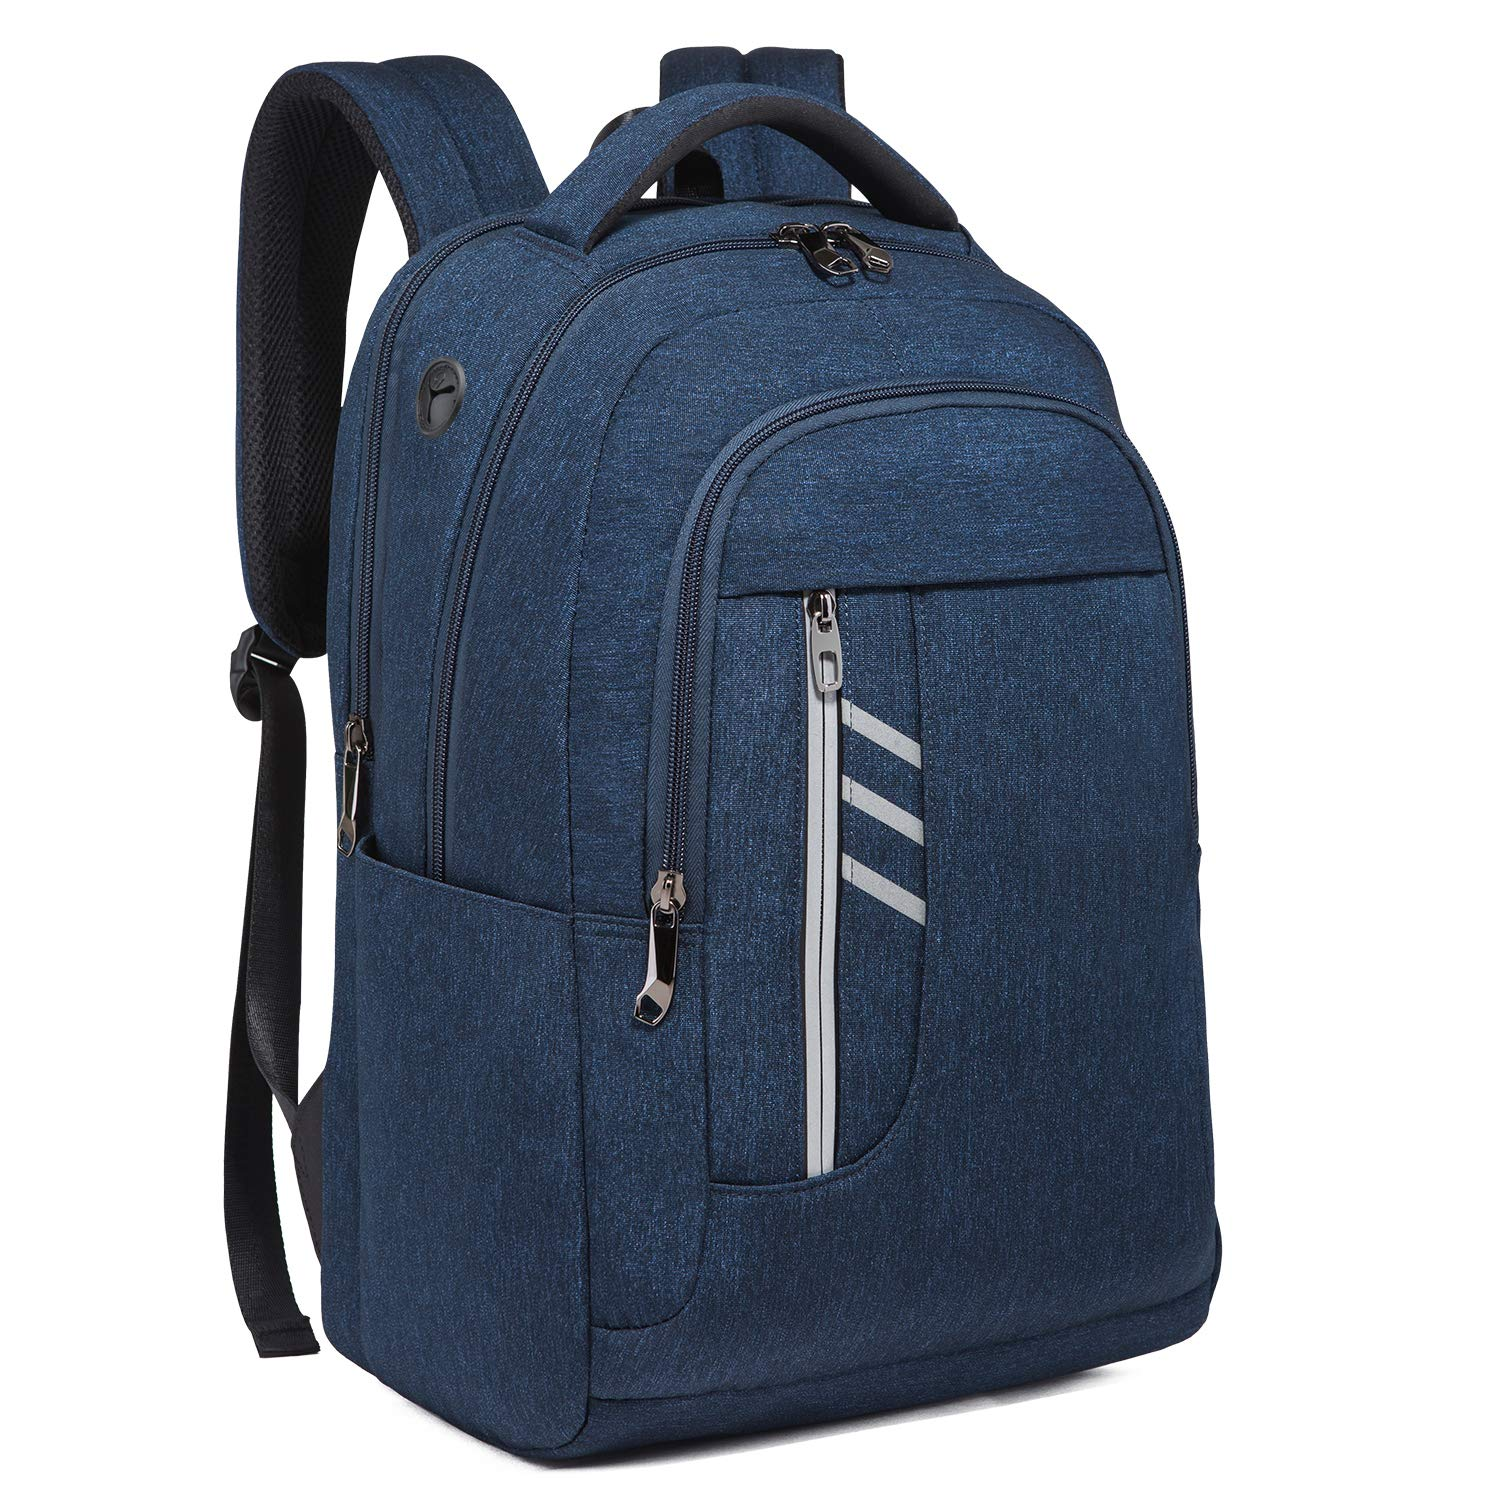 Travel Work Backpack Fits 15.6 Inch Laptops College School Bag Daypack Men&Women by KOSSY